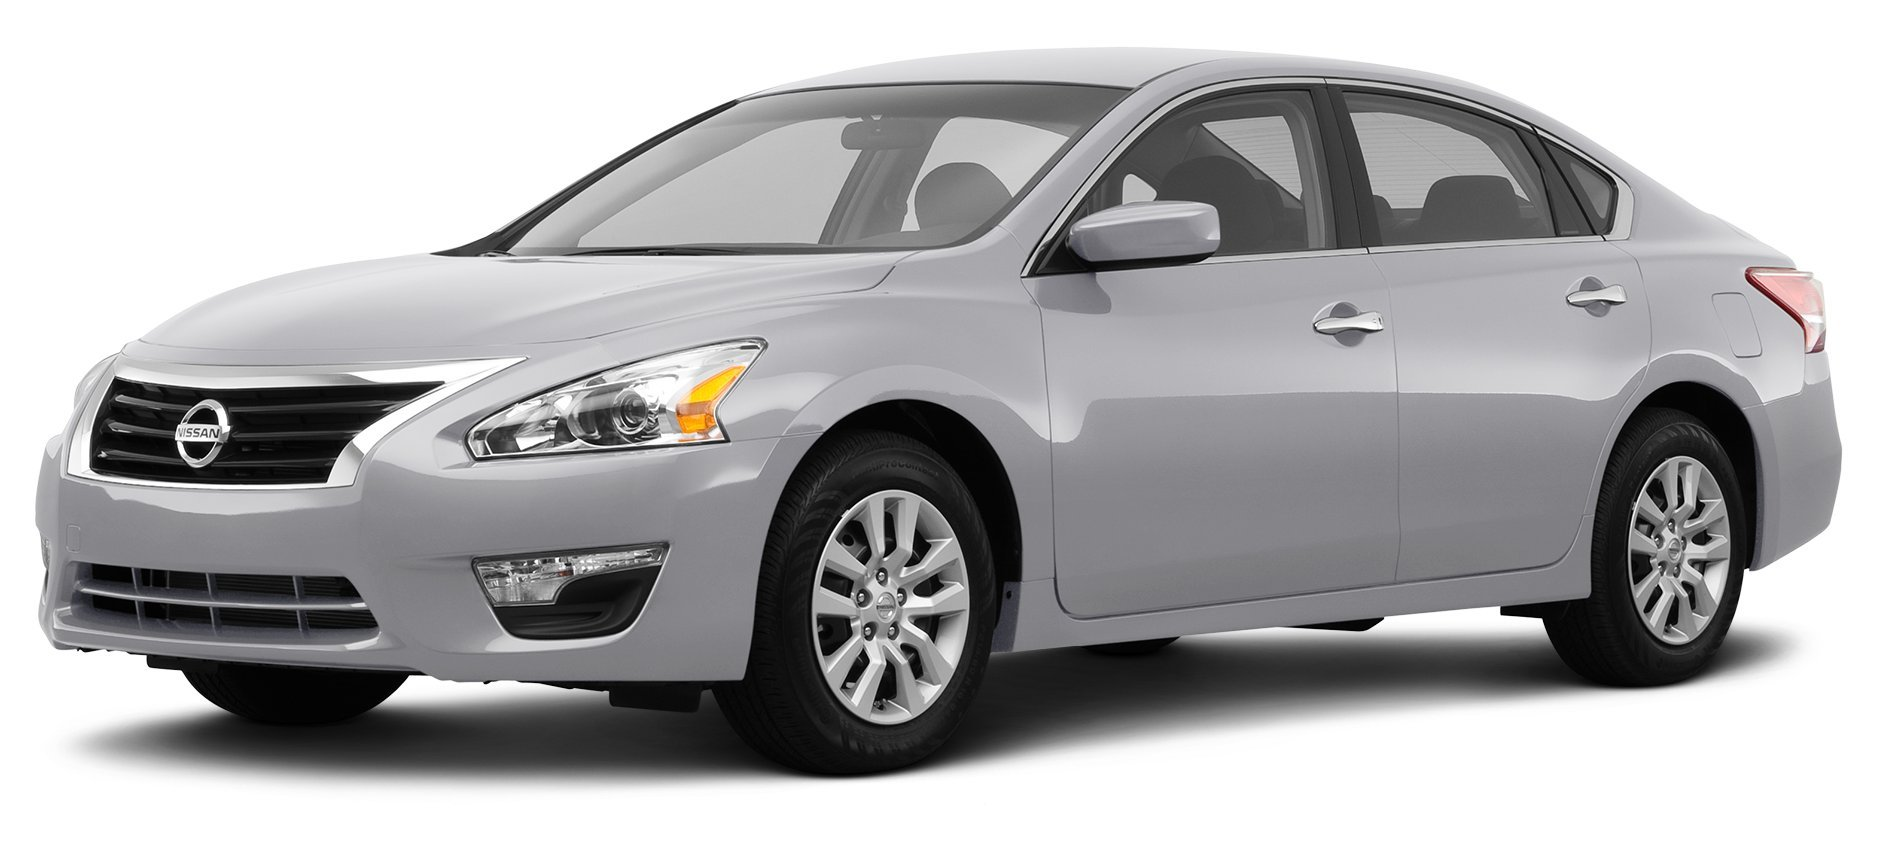 2013 nissan altima reviews images and specs. Black Bedroom Furniture Sets. Home Design Ideas